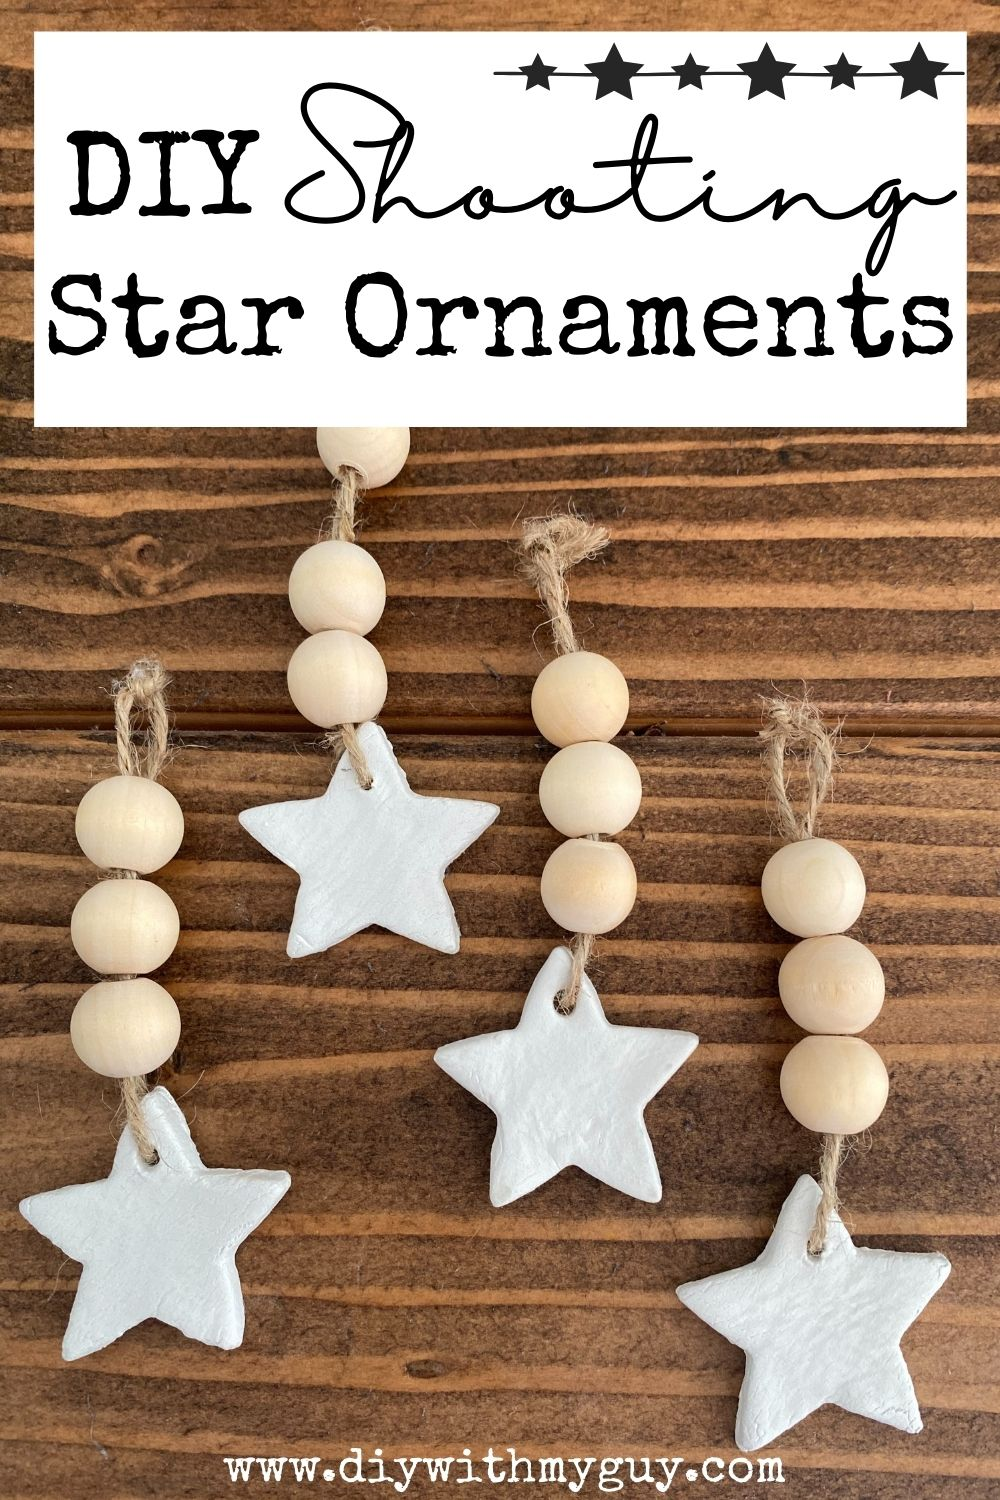 DIY Shooting Star Clay Ornaments